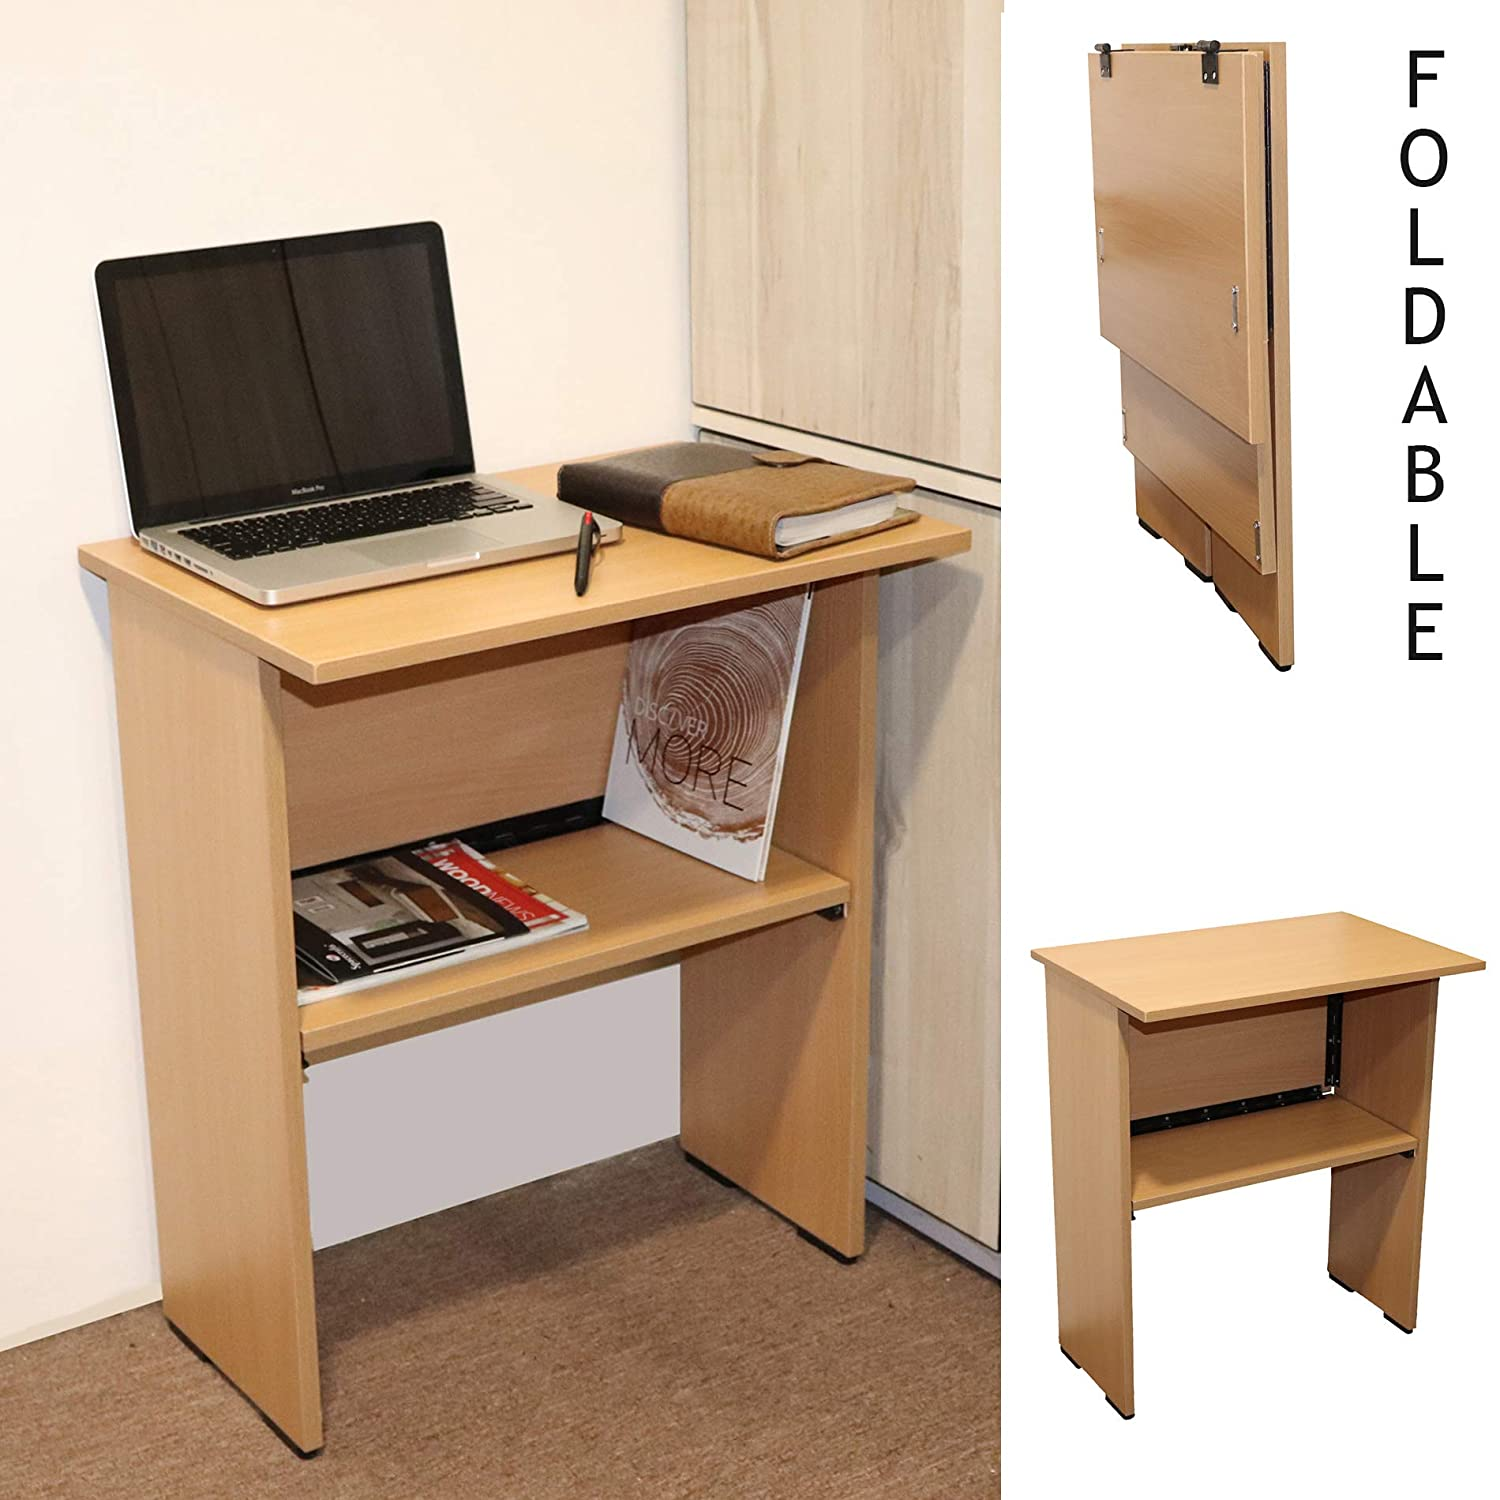 - Spacecrafts Wooden Folding Computer Table For Laptop Study Office